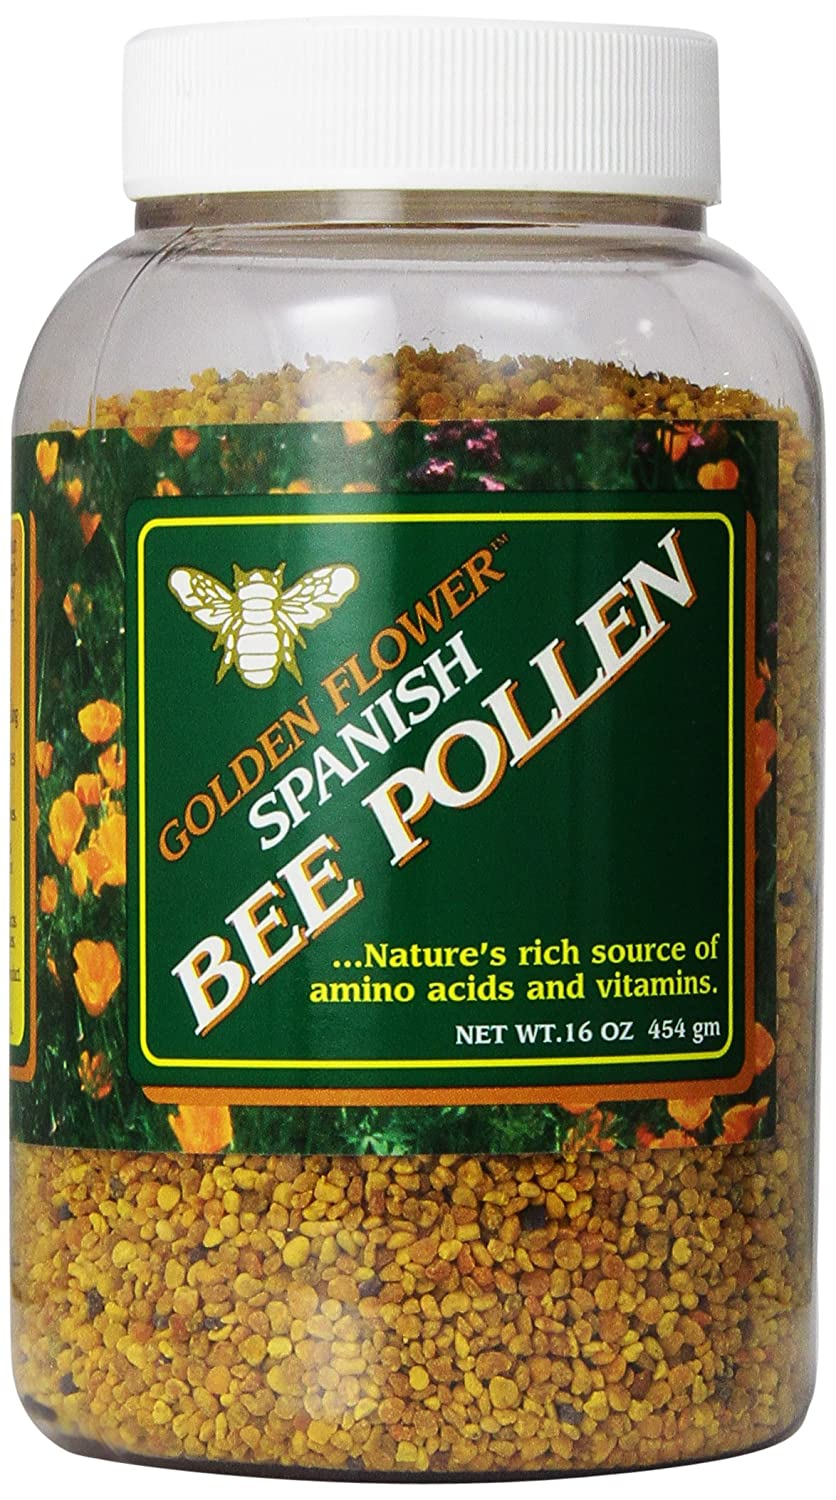 最新入荷 海外直送品Golden Flower Spanish by Bee Pollen, 16 Oz by Spanish Golden Golden Flower B0019LR30Y, こだわりのアイタイショップ:b260cedf --- arianechie.dominiotemporario.com